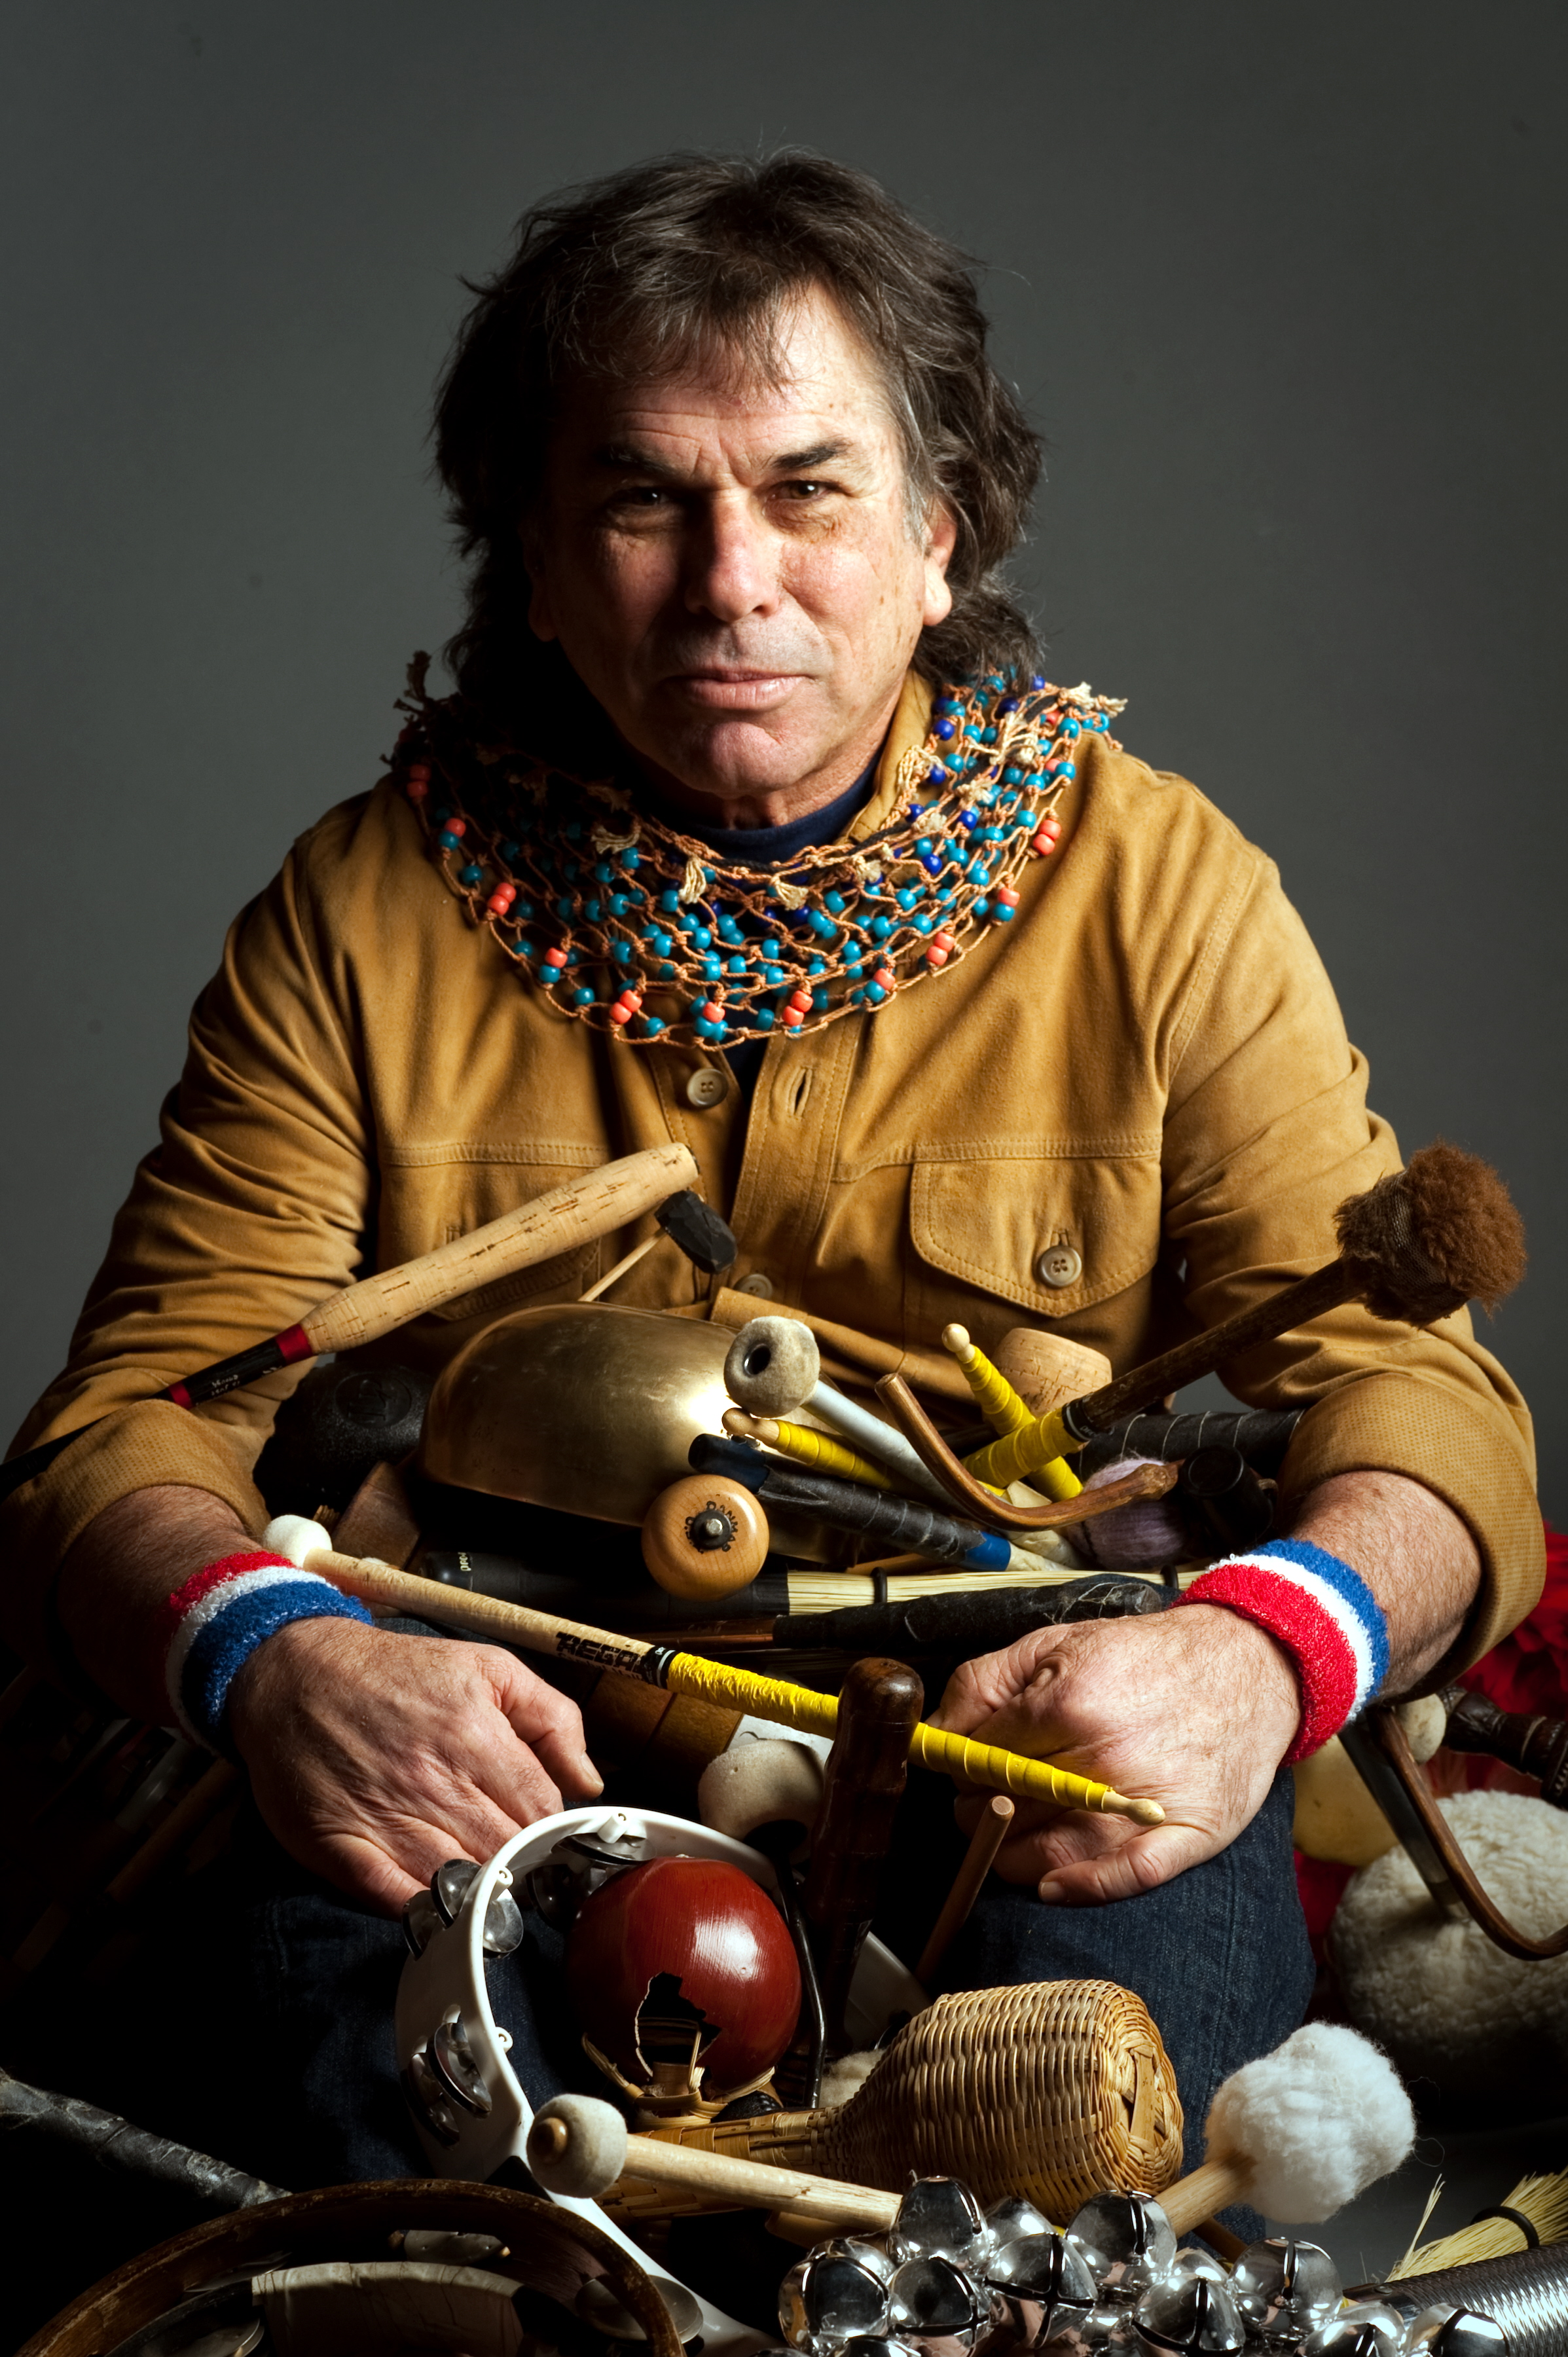 Mickey Hart's quote